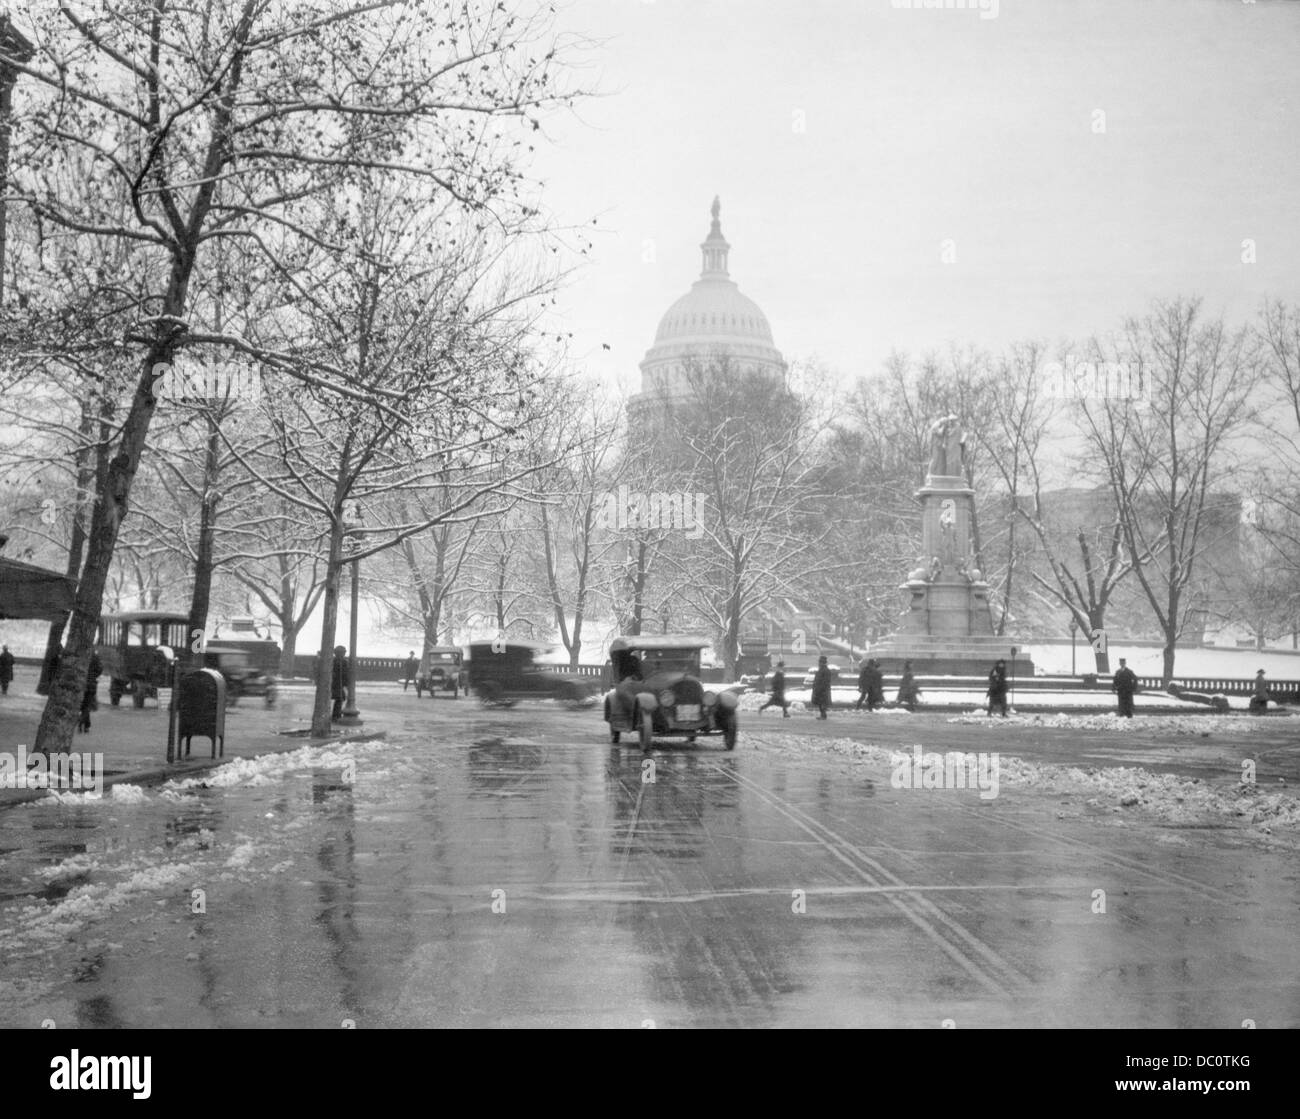 1920s 1930s THE CAPITOL BUILDING AND OLD CAR TRAFFIC IN